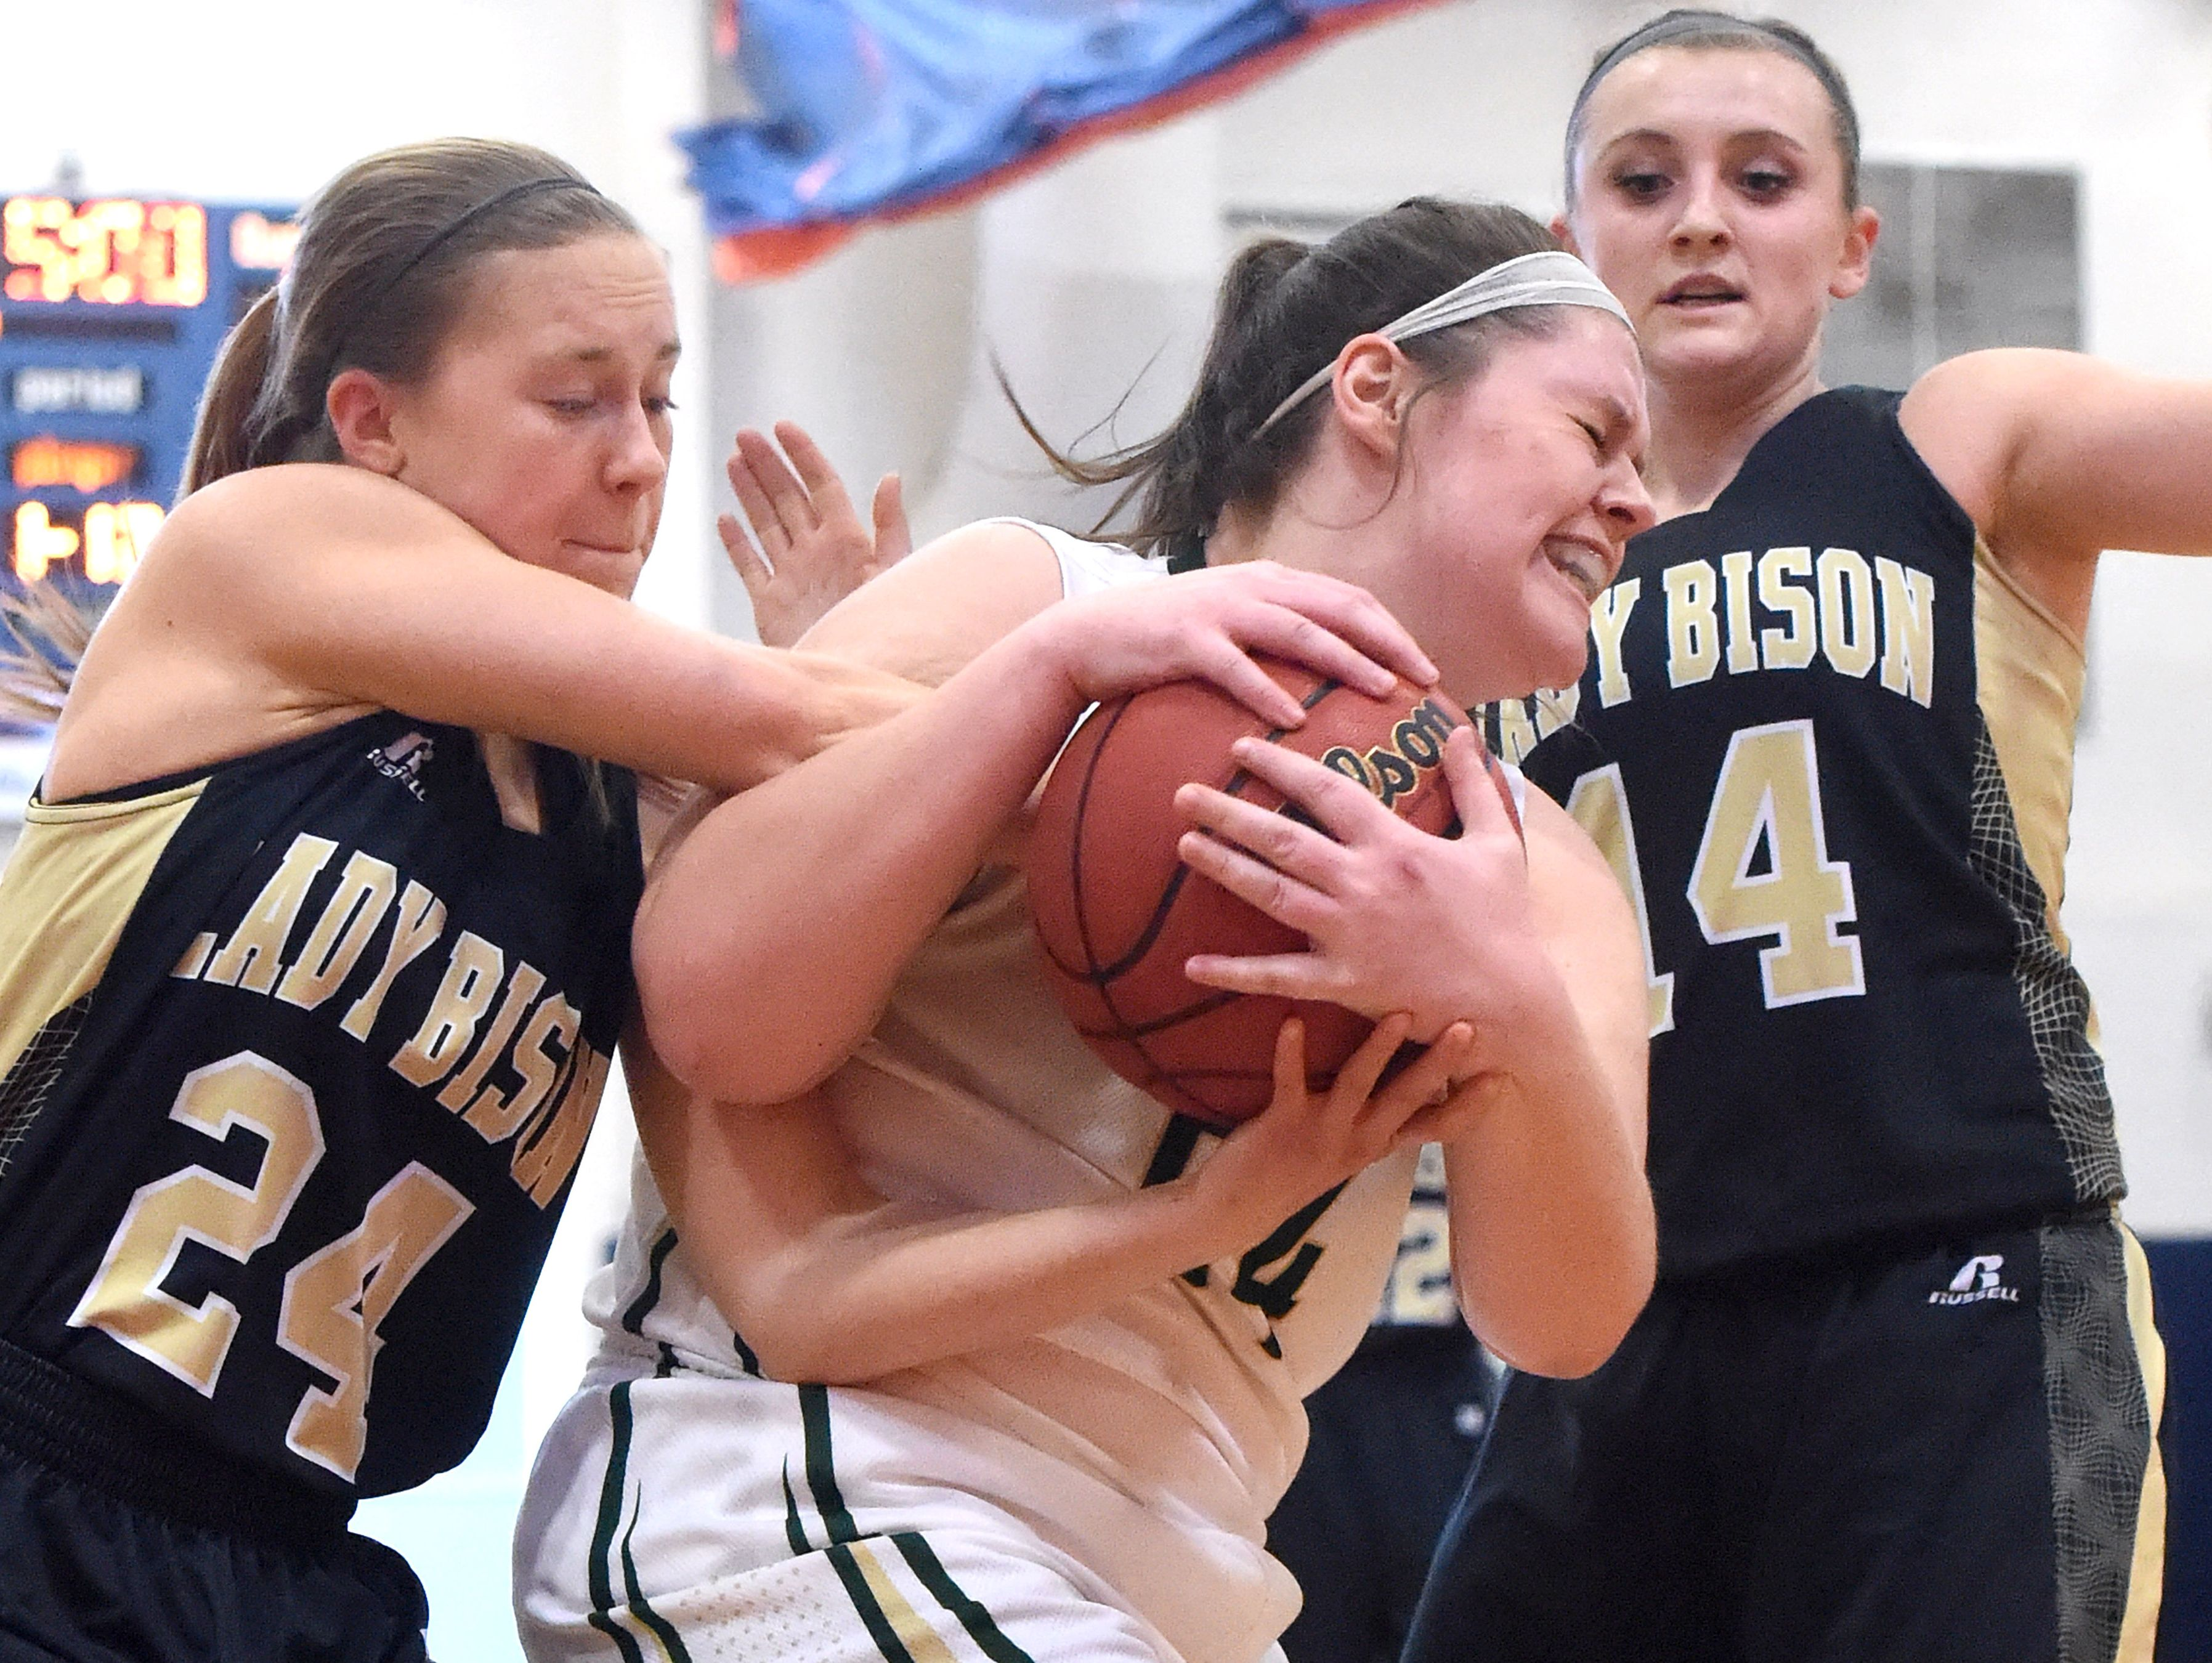 Wilson Memorial's Jordan Sondrol (center) fights to hold onto the ball as Buffalp Gap's Shelby Stenzel tries to strip it from her while Gap's Marybeth Strickler guards during the Region 2A East girls basketball championship played in Orange on Saturday, Feb. 27, 2016.